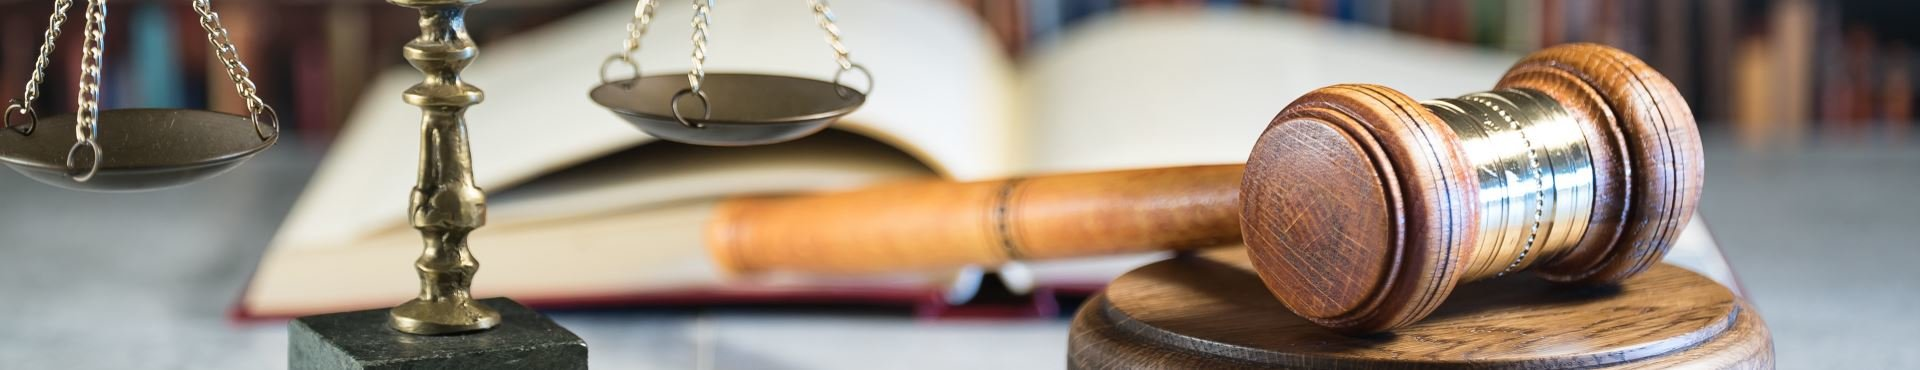 Gavel, scales and law books | Shine Lawyers